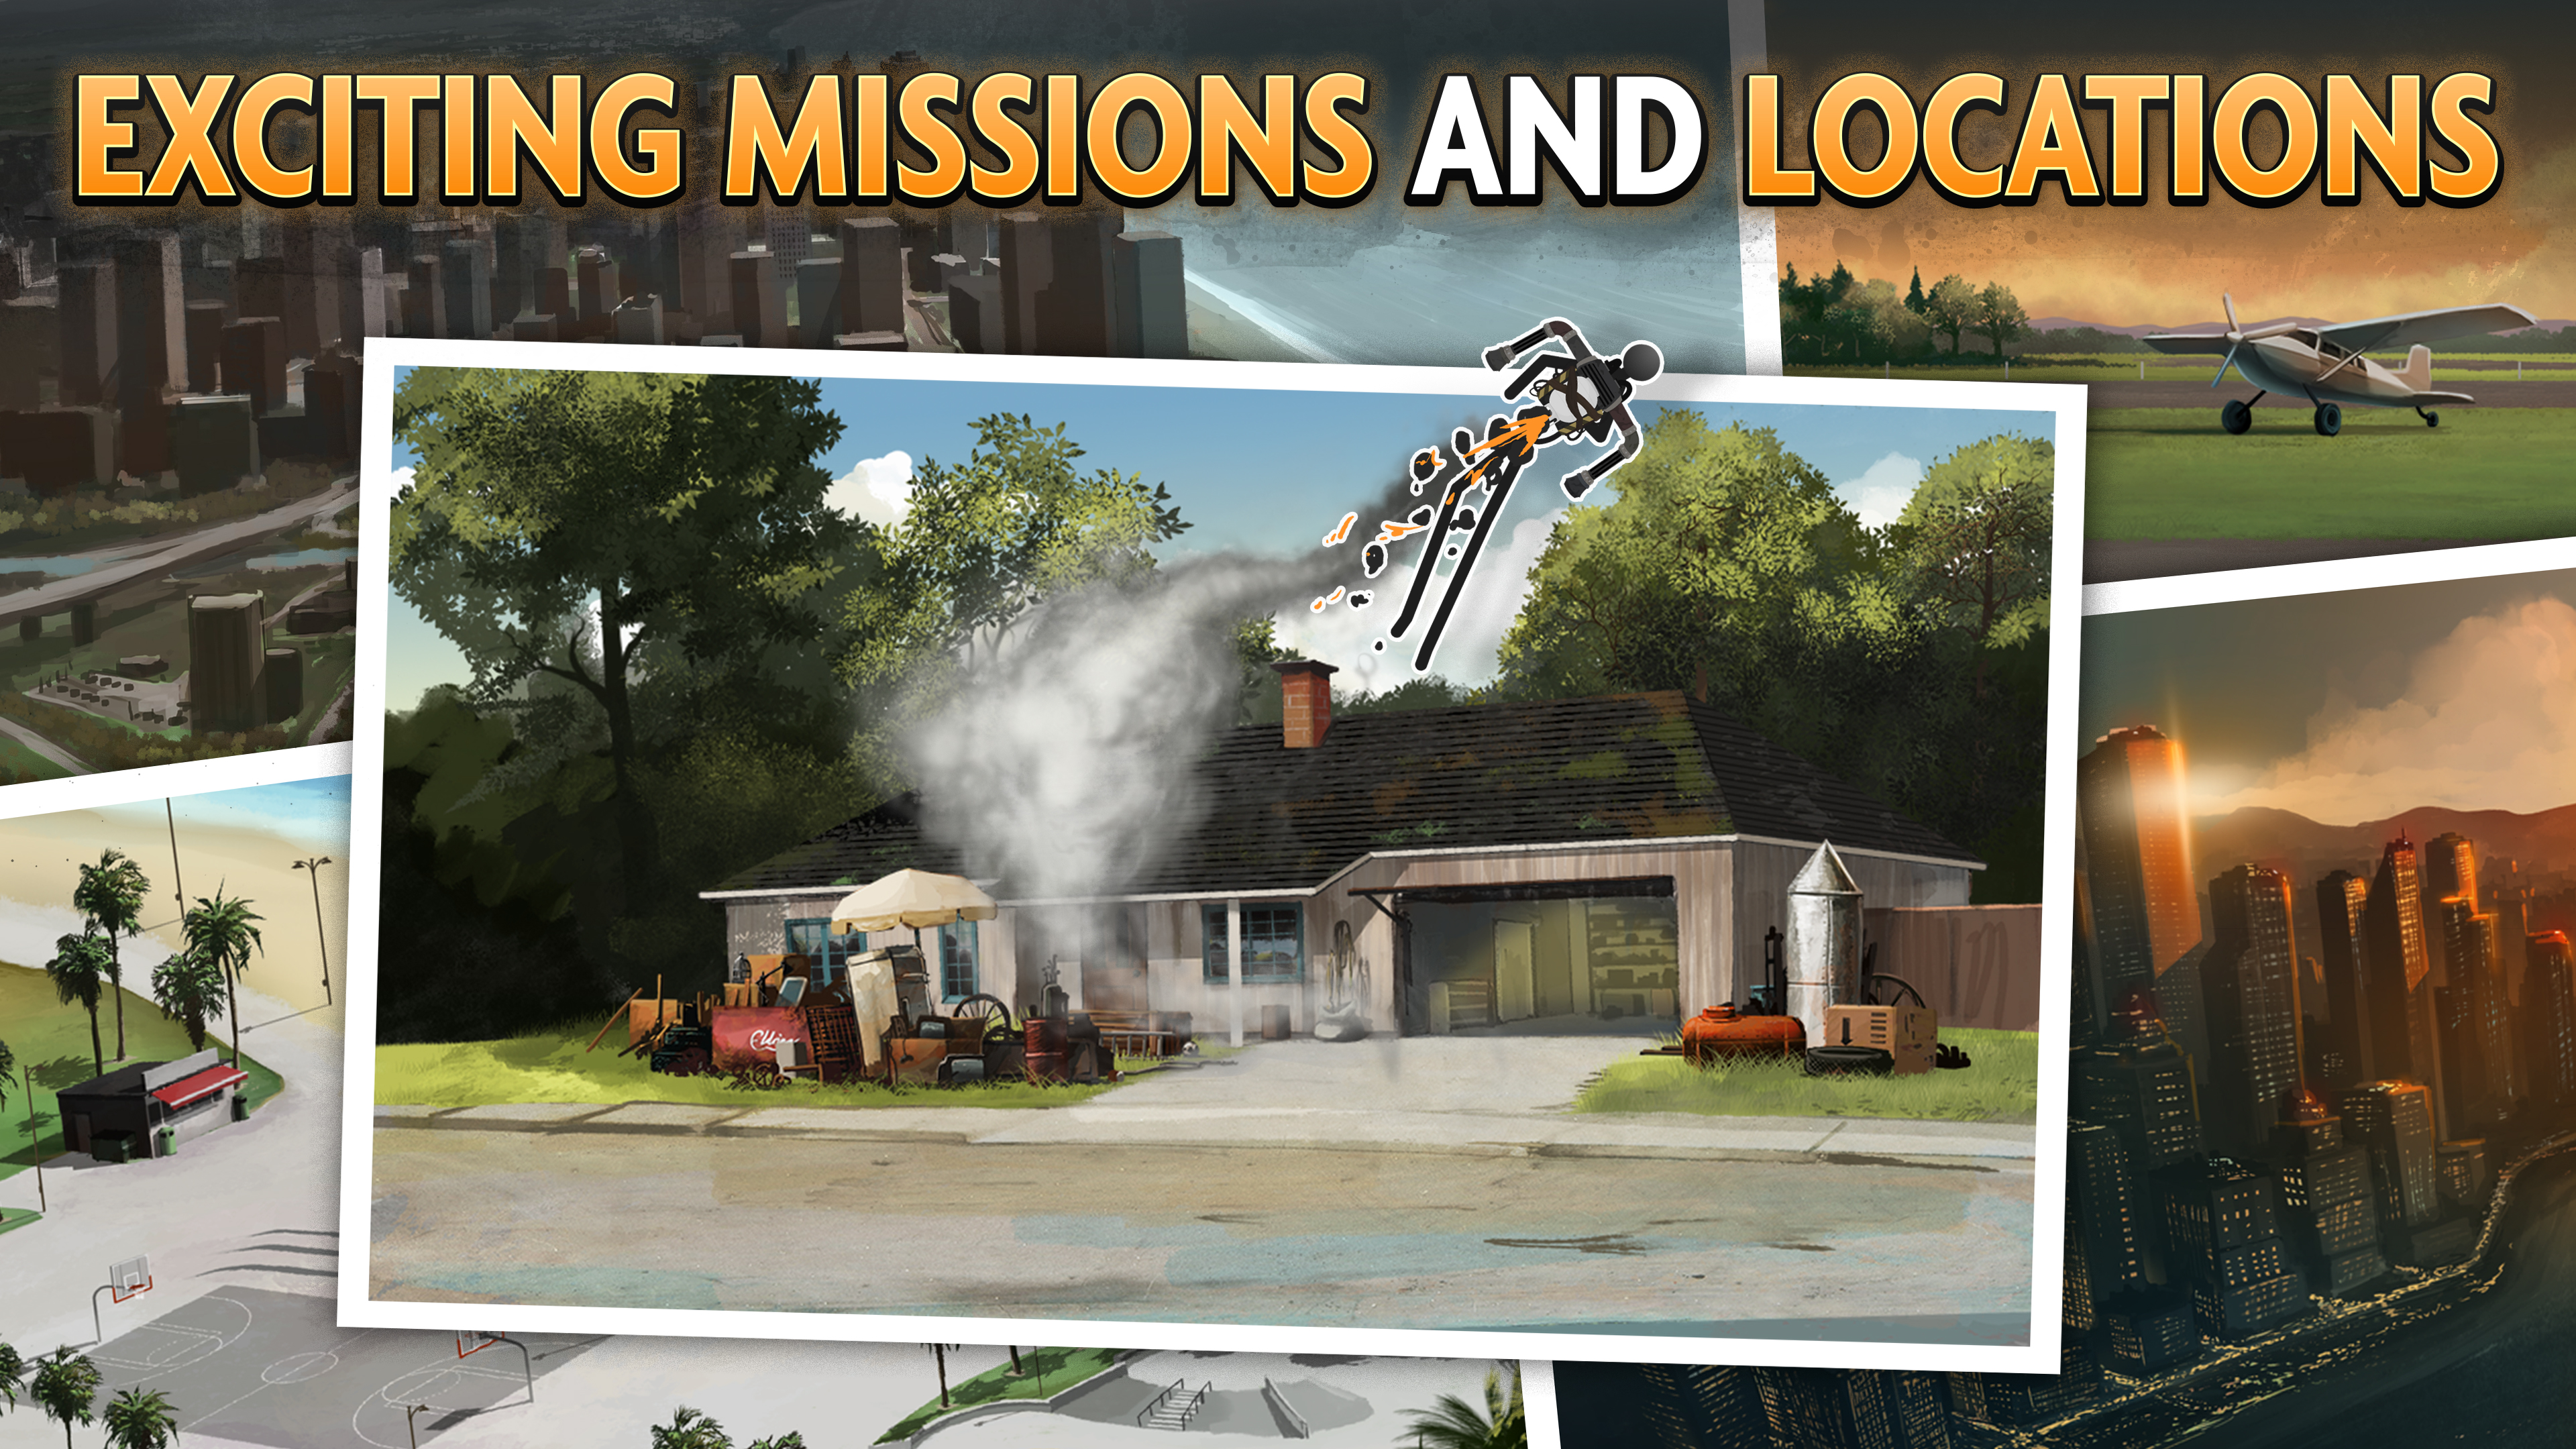 Clear Vision 4 Missions